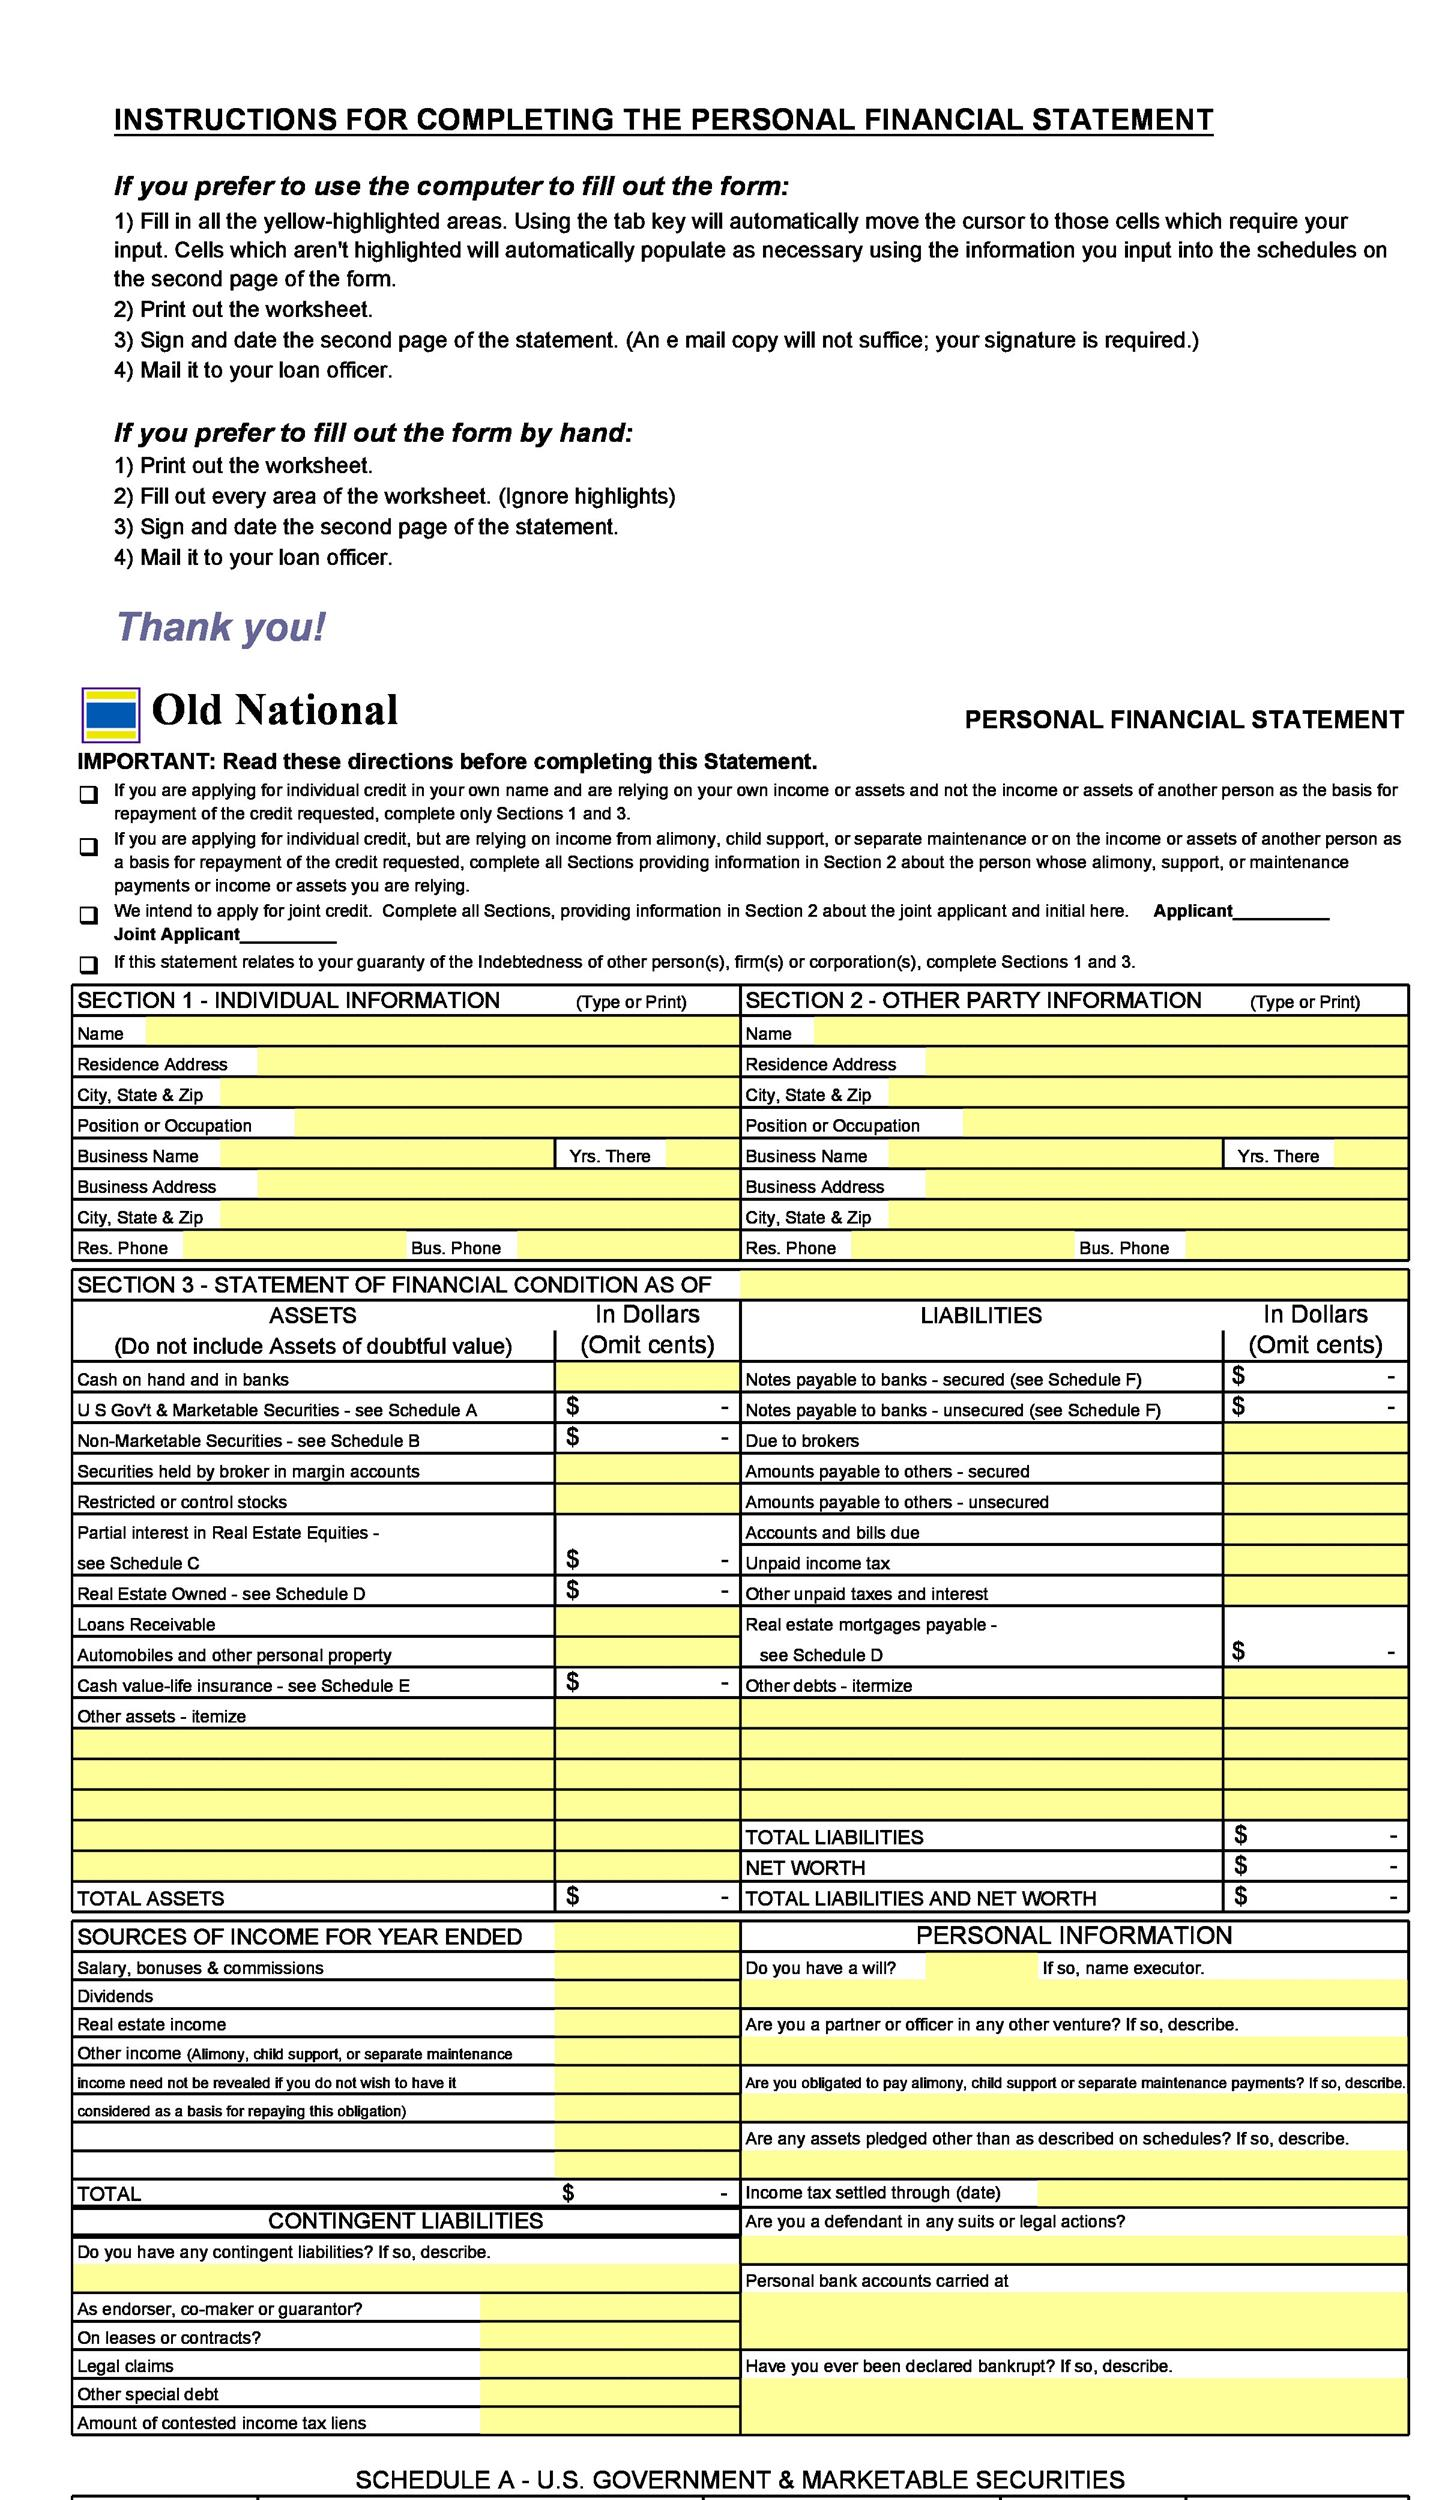 printable personal financial statement template 02 - Personal Financial Statement Forms